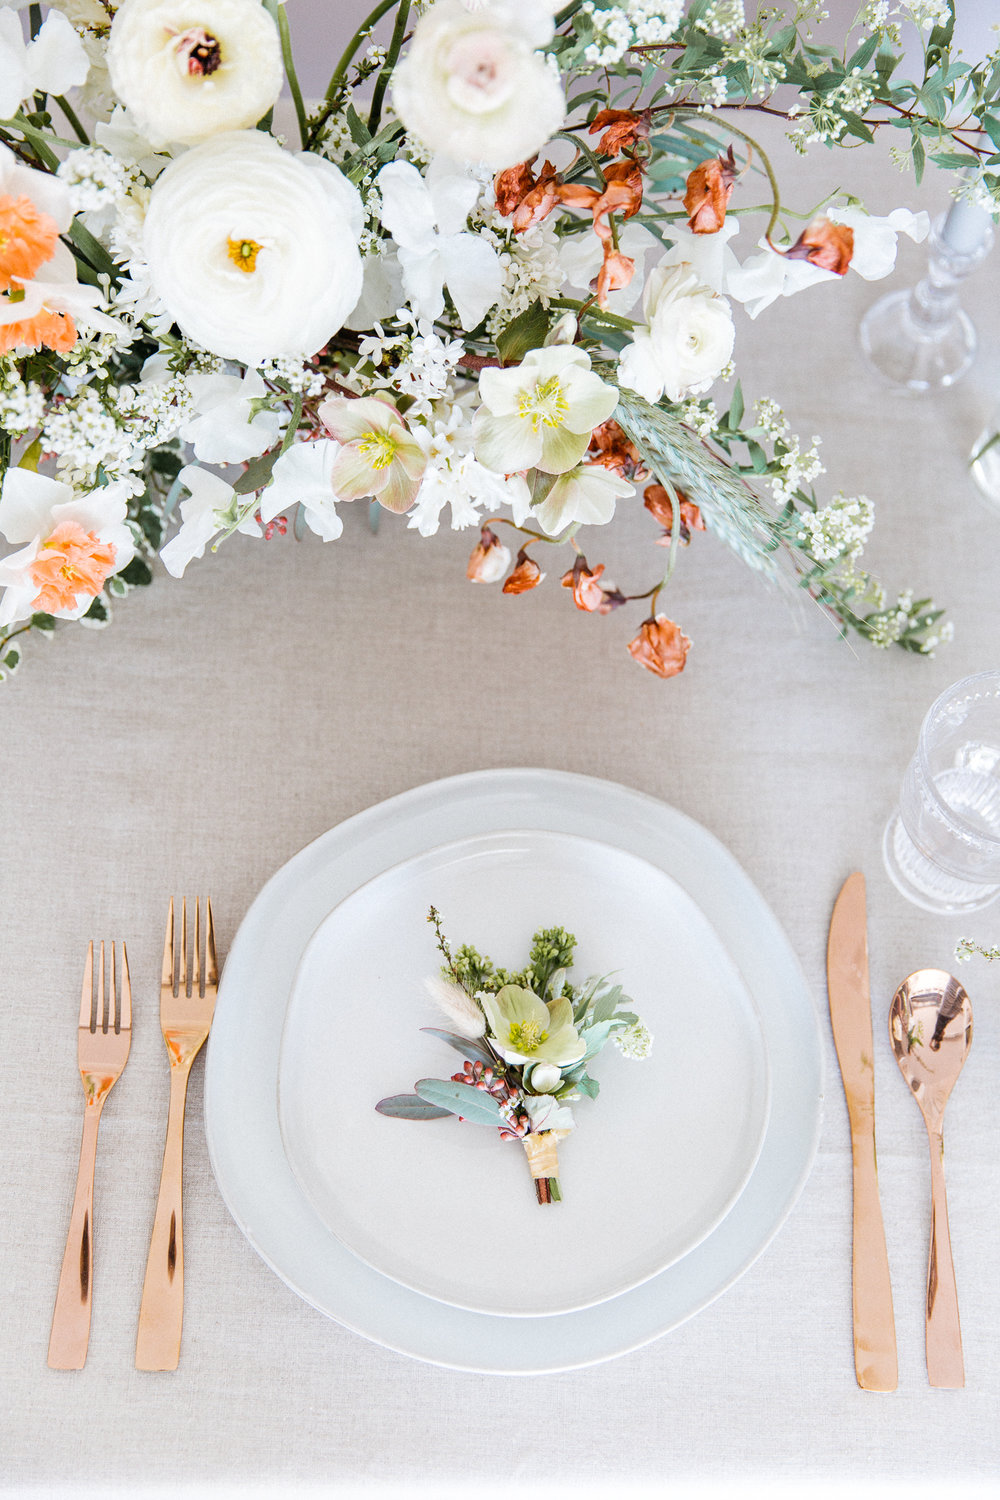 Dining Setting Milieu Florals Details Photography OC Portrait Event Photographer